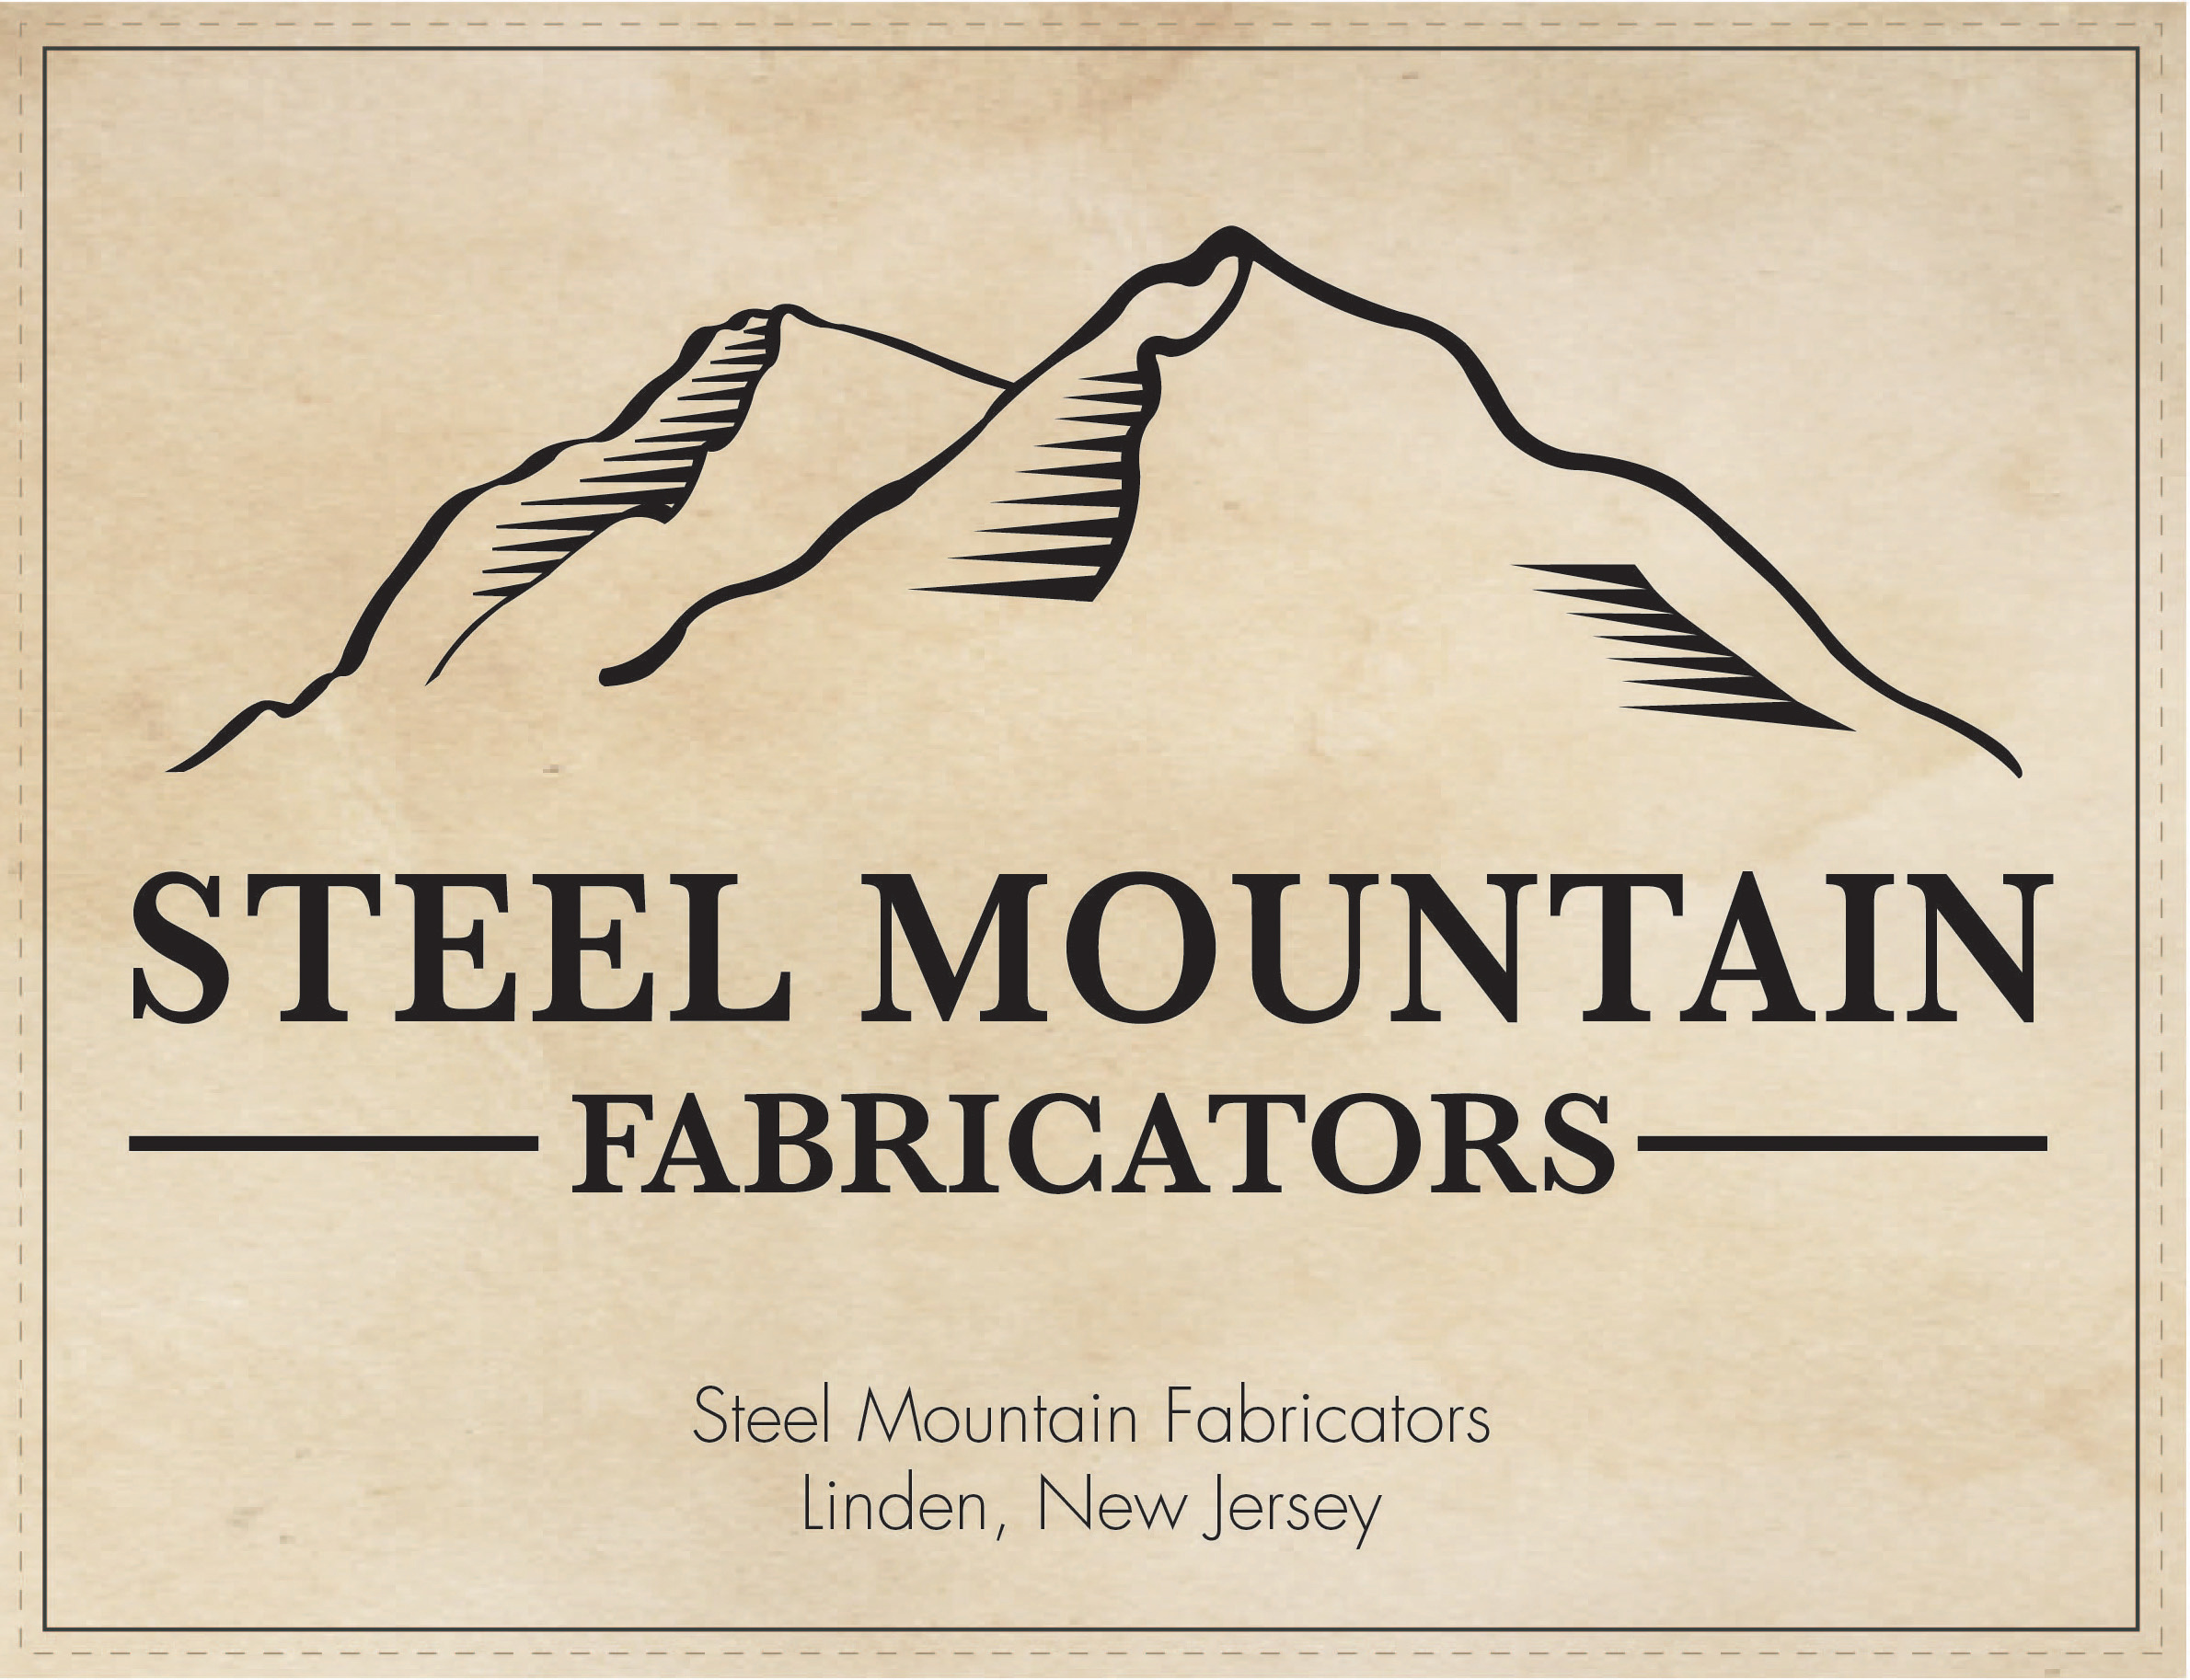 Steel Mountain Fabricators